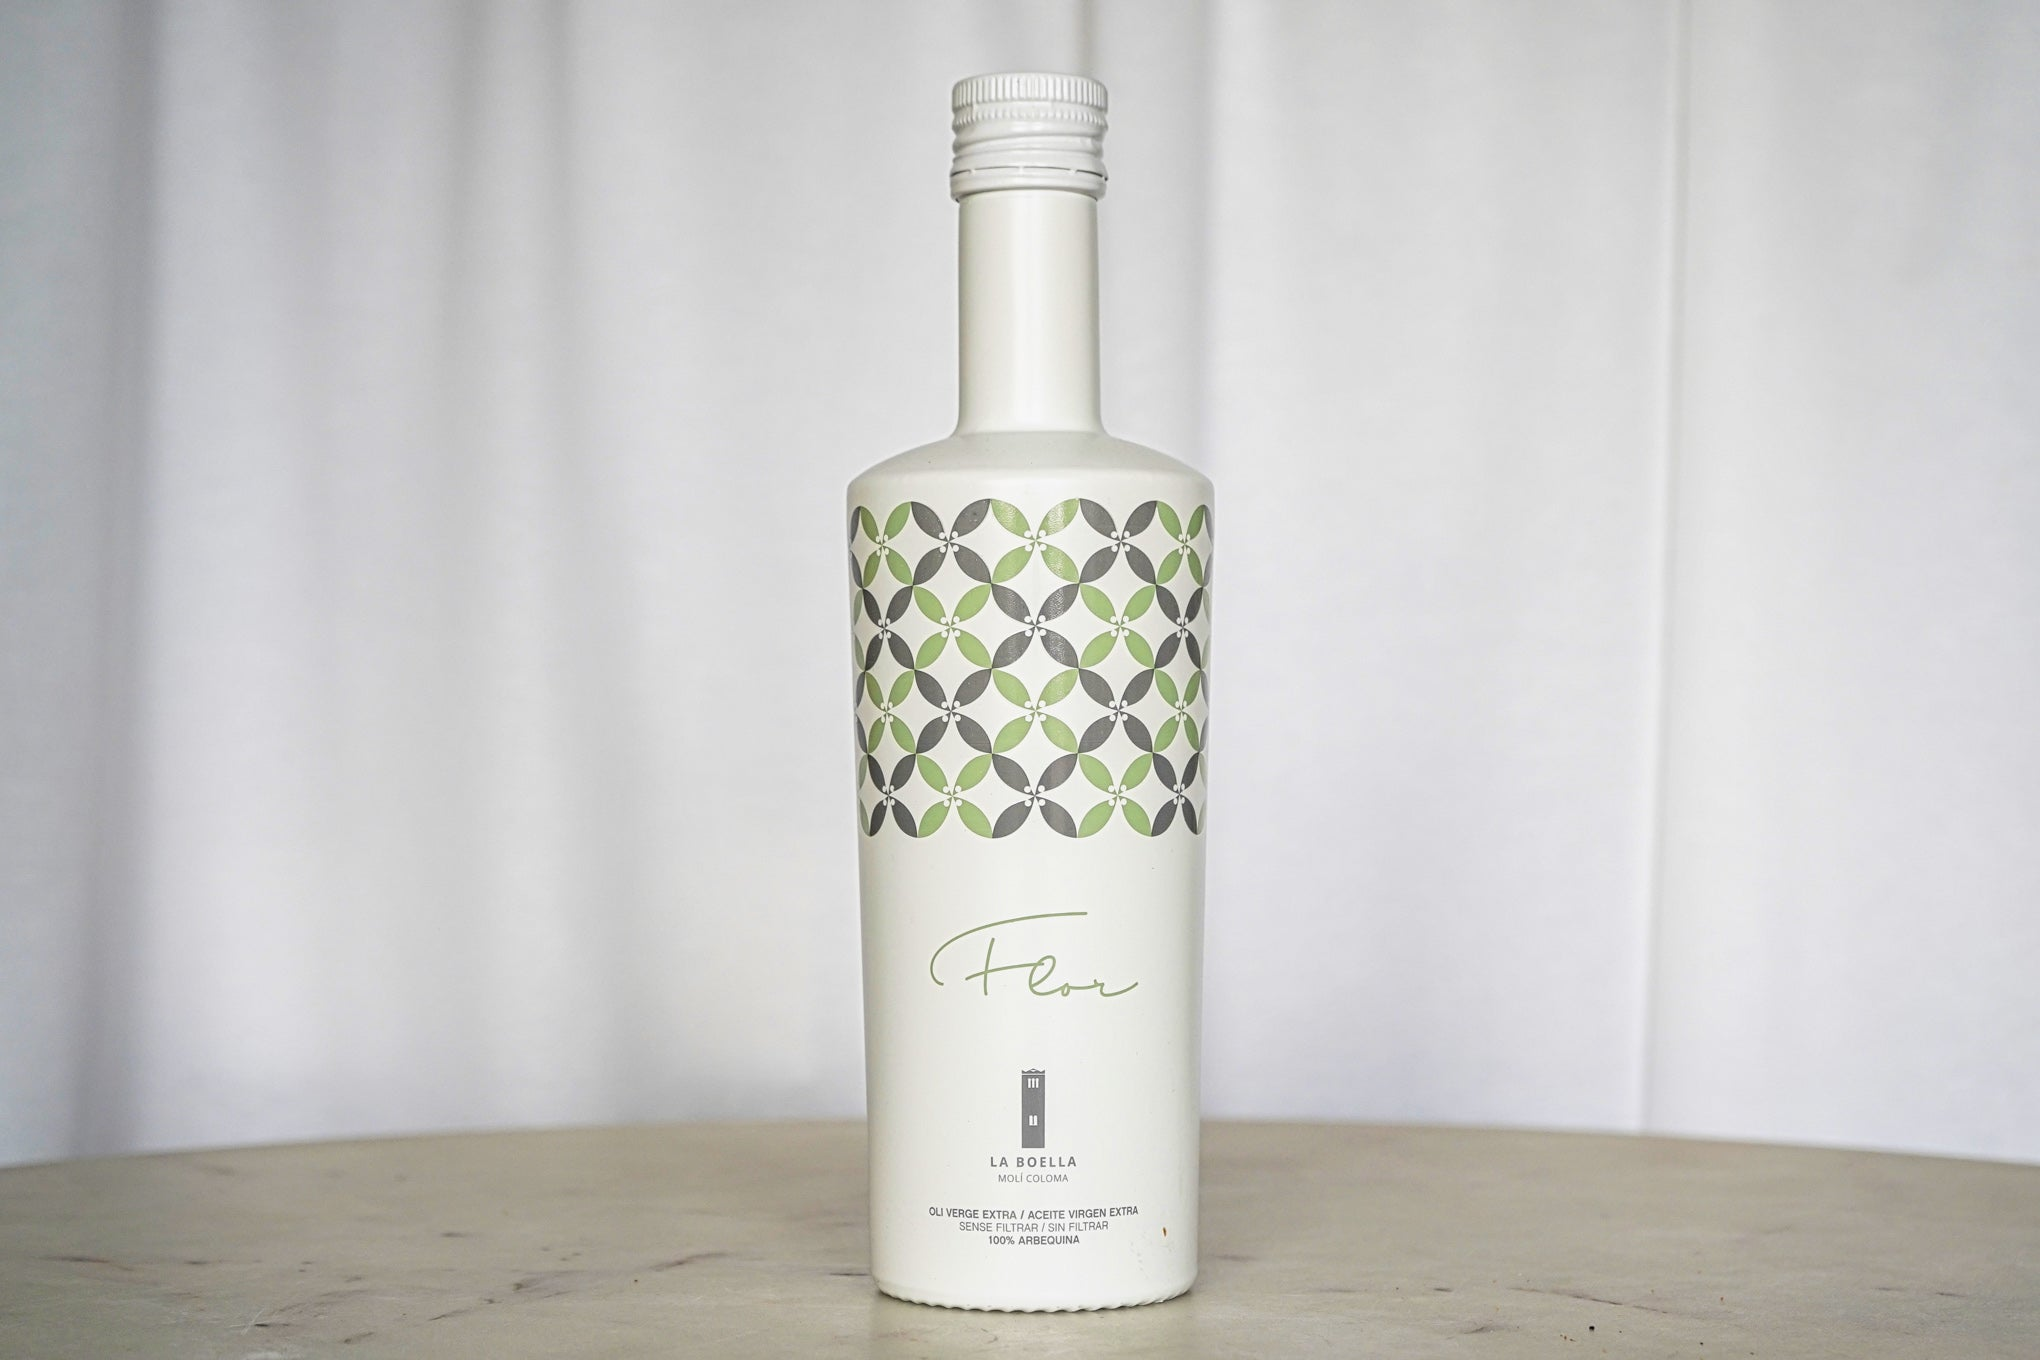 La Boella Flor Olive Oil in white bottle